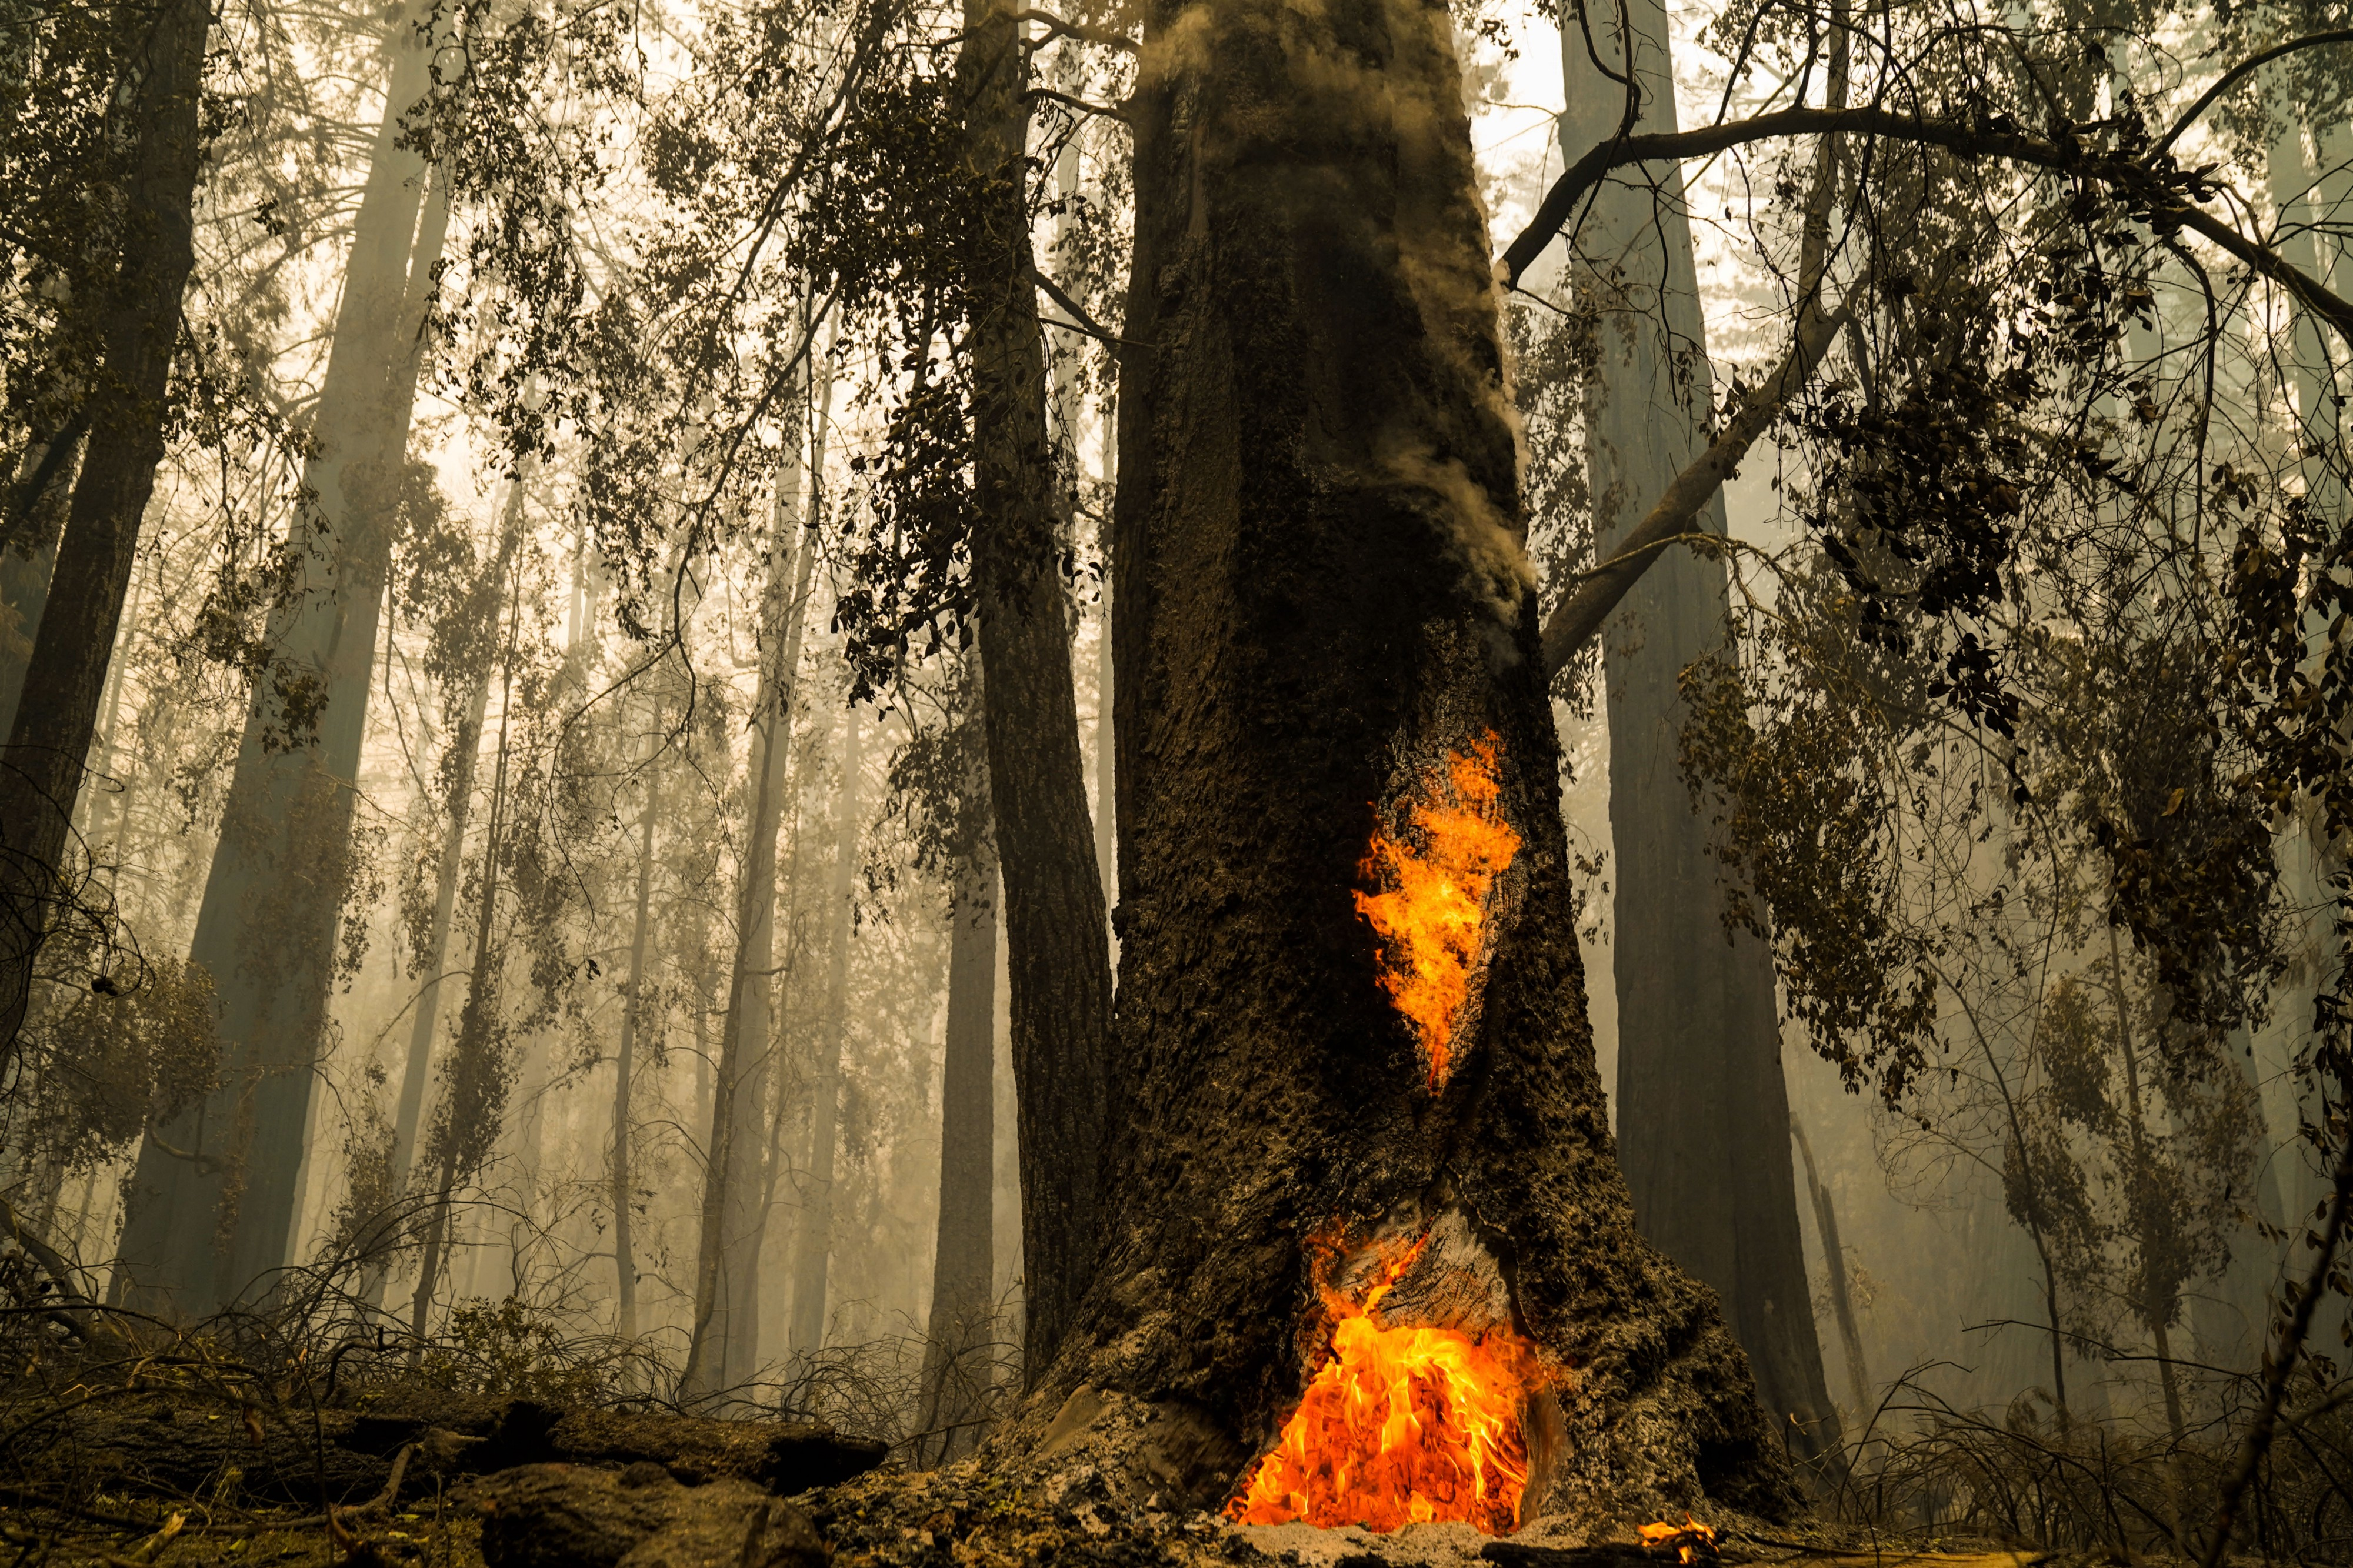 A redwood forest filled with smoke. The tree closest to the camera is on fire at its base.